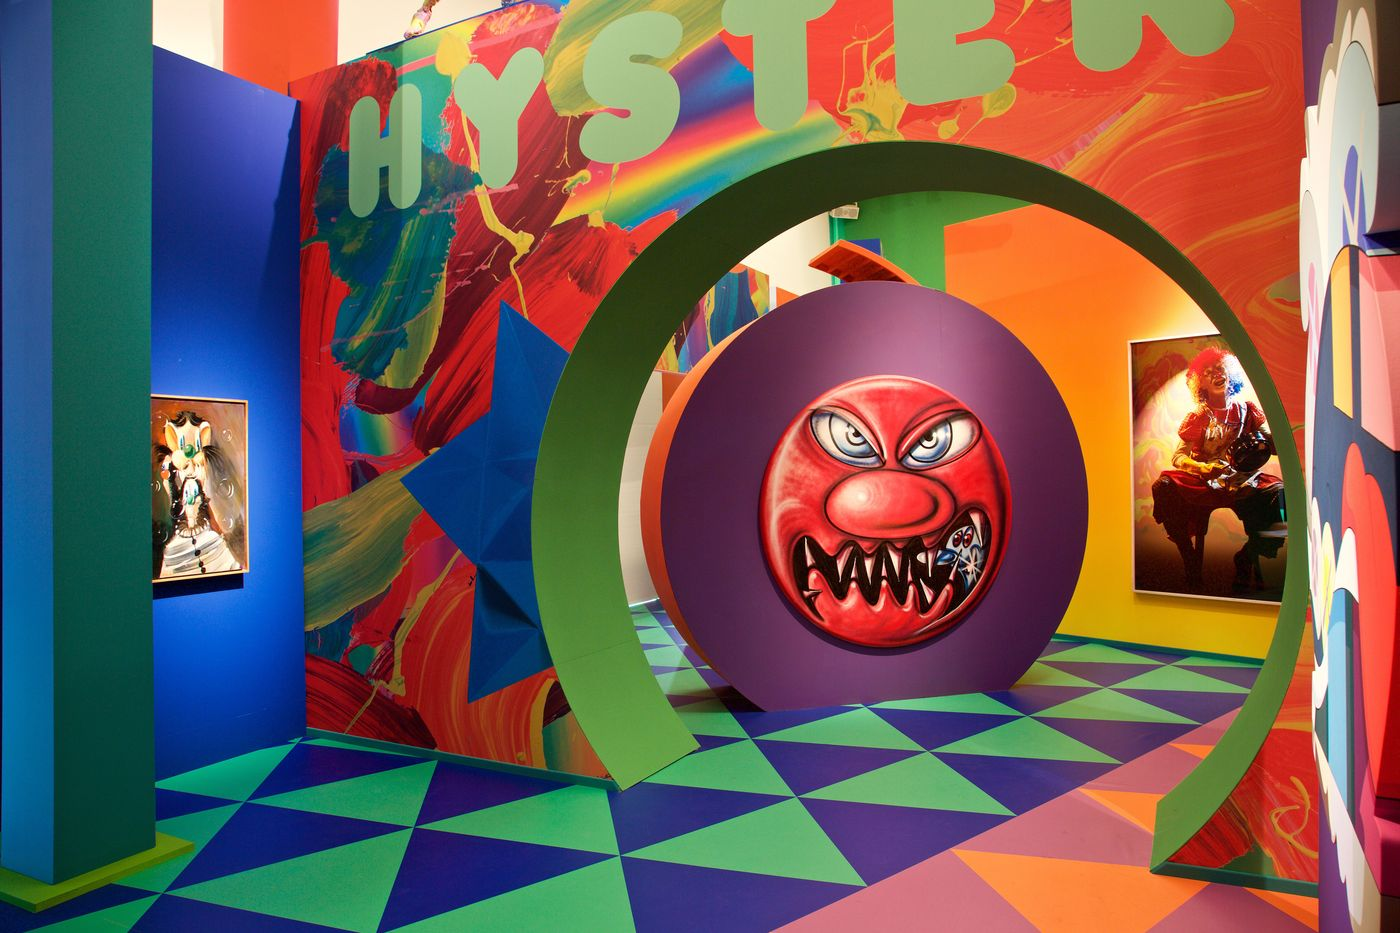 Tour our summer exhibition, HYSTERICAL, in this virtual reality walkthrough from 30 Berkeley Square. On view: Kenny Scharf, Cindy Sherman, Ugo Rondinone, KAWS and Yayoi Kusama.